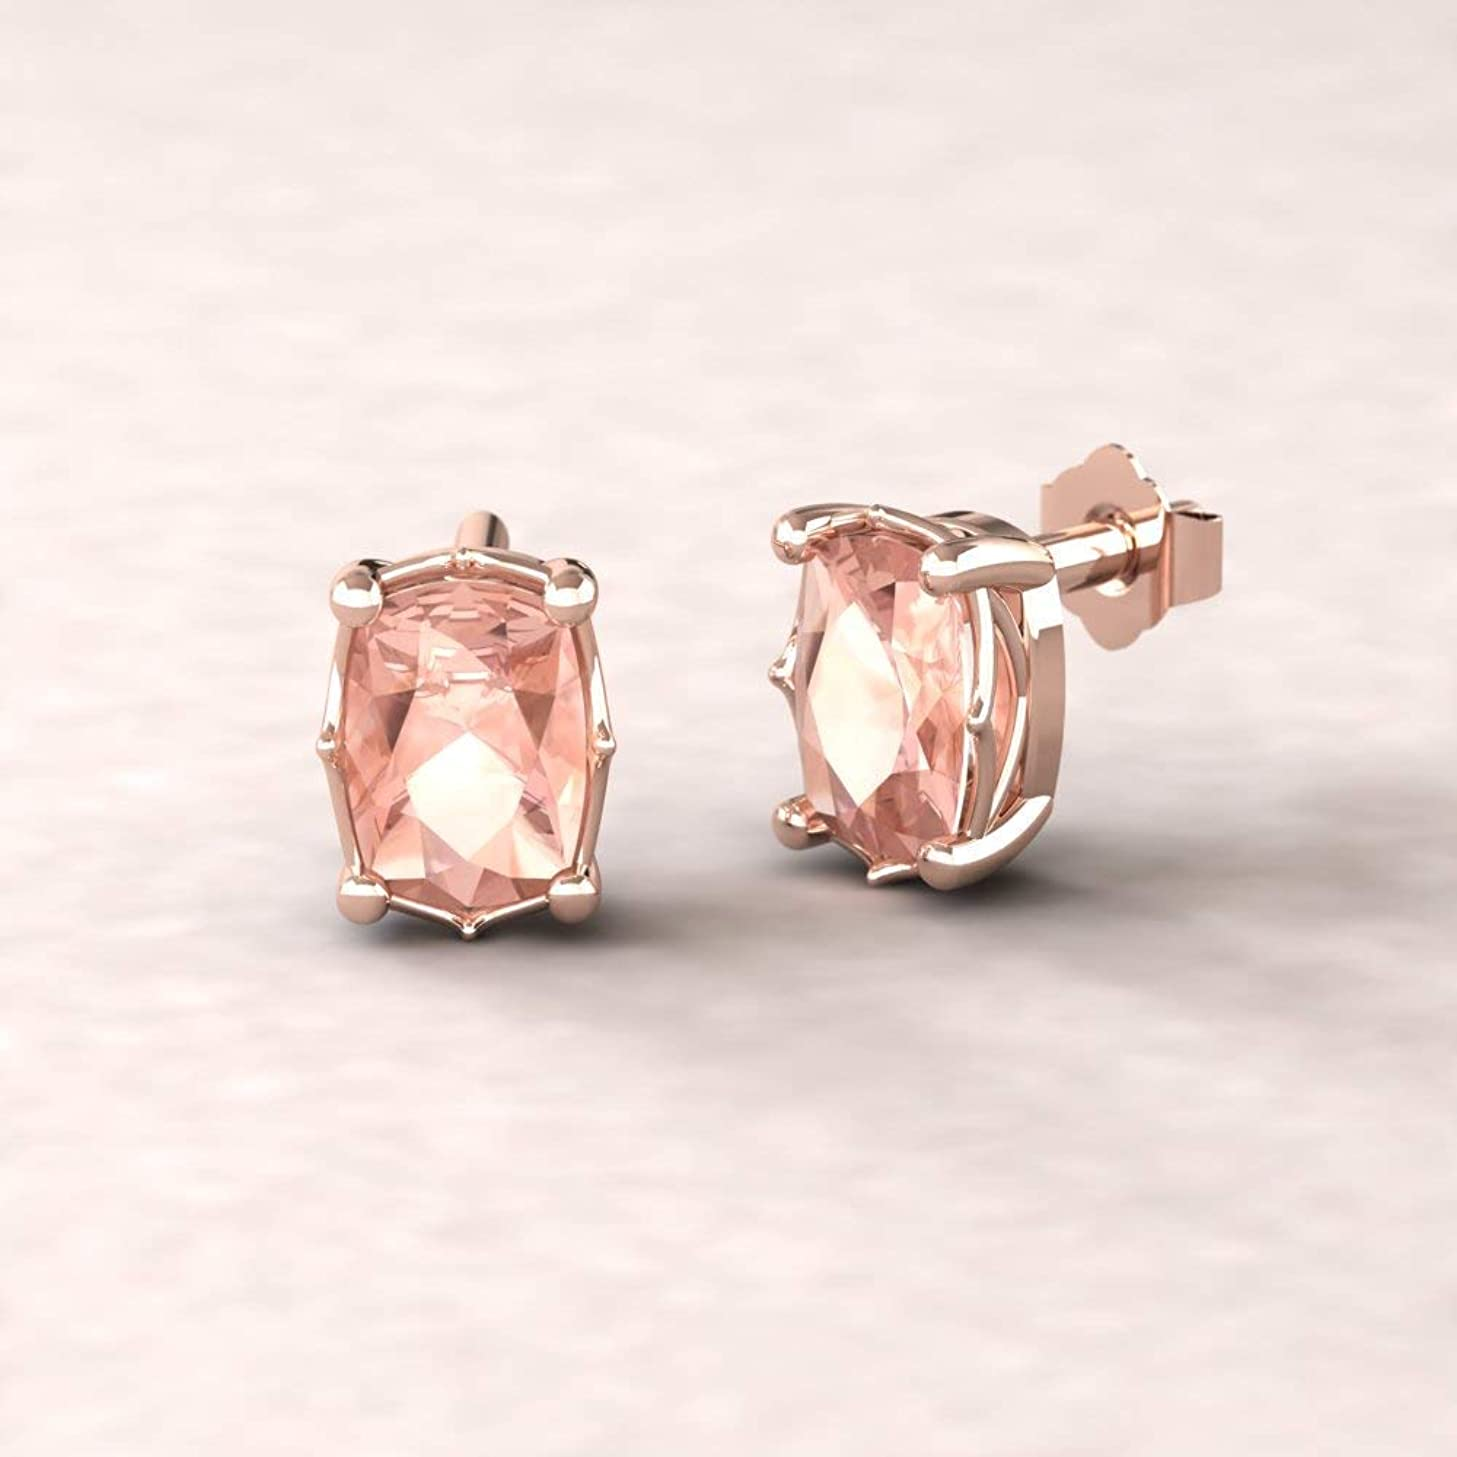 Rectangular Cushion Morganite Earrings - 7x5mm Solitaire